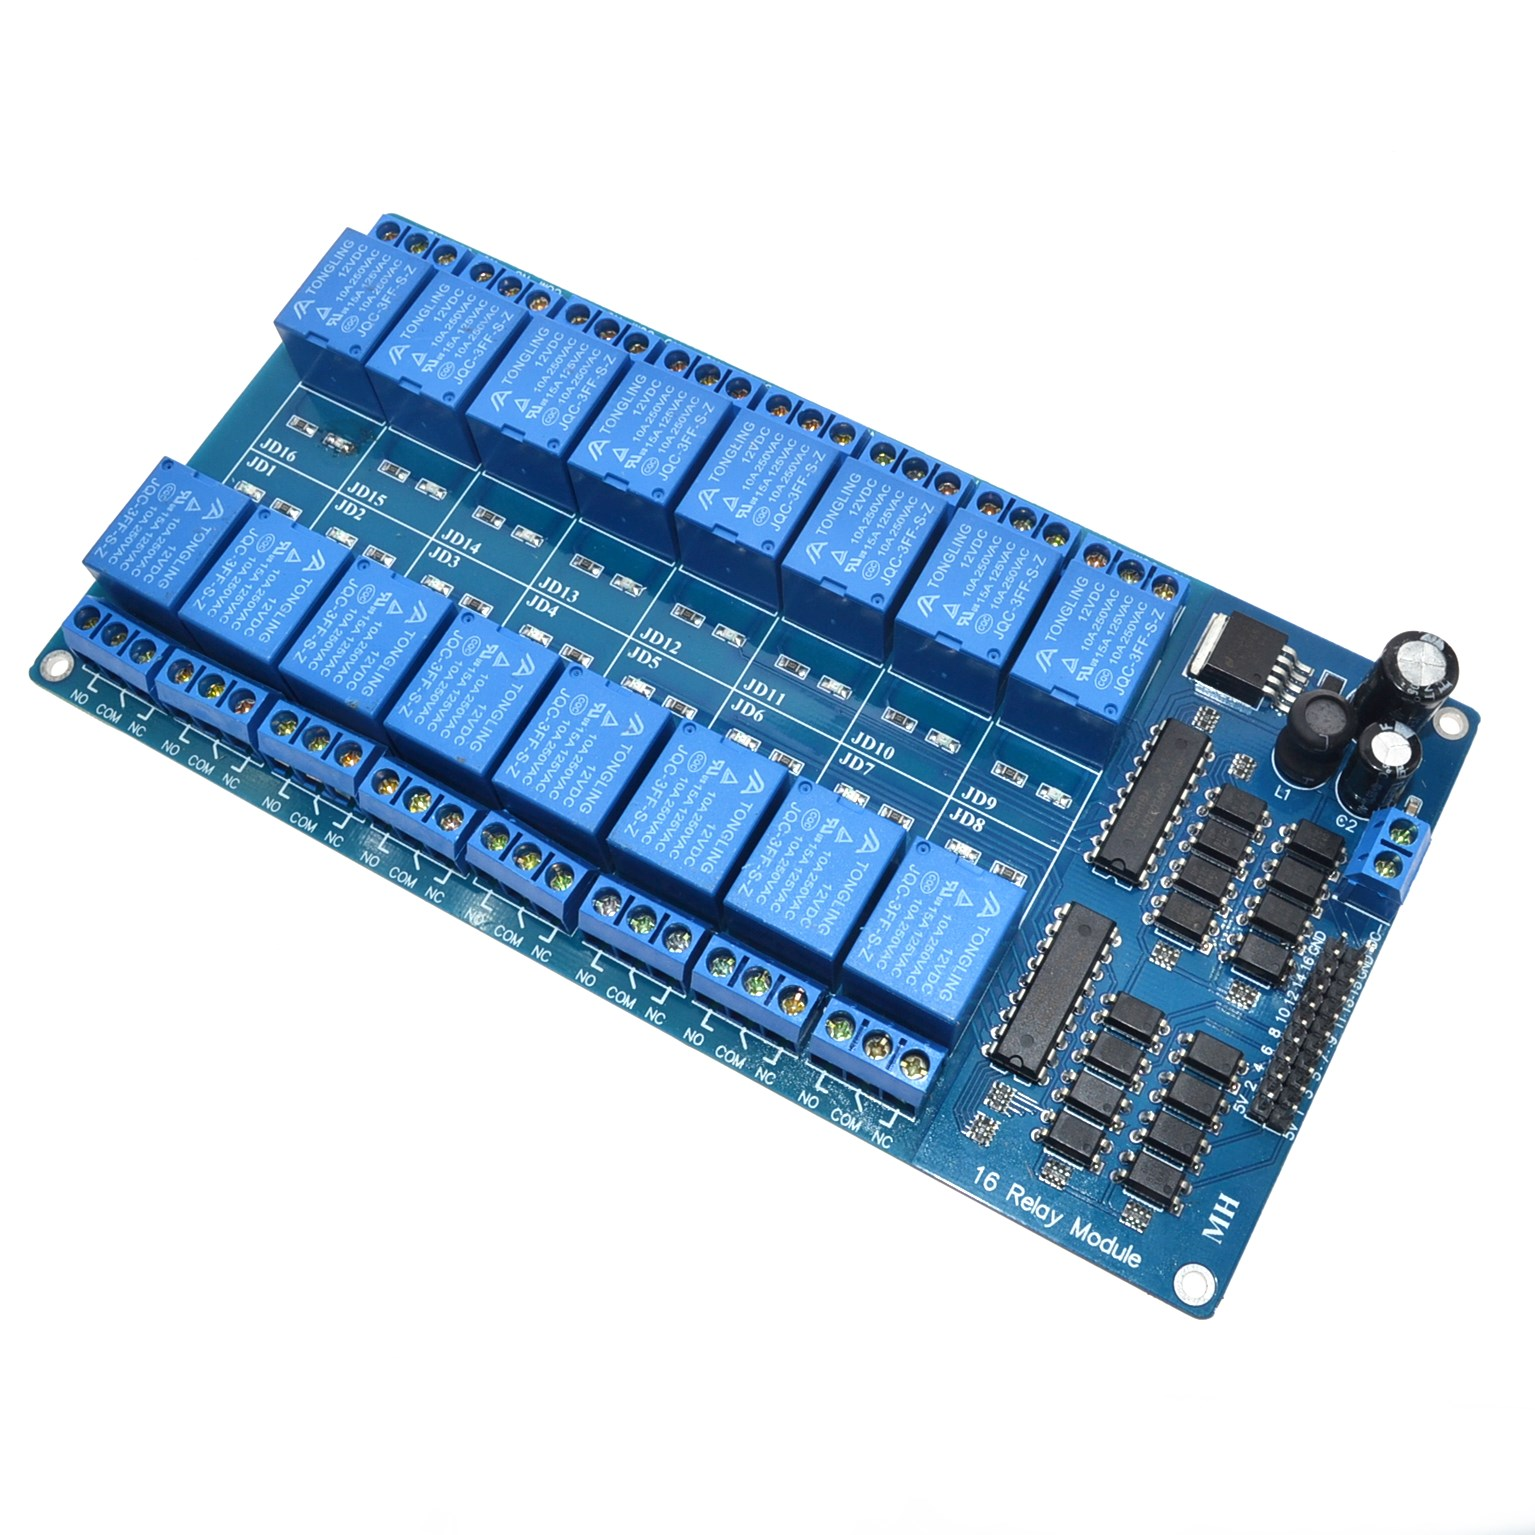 10pcs Diy Prototype Paper Pcb Universal Experiment Matrix Circuit Bread Board Also Known As Or Ic Test Because 5v 4 Channel Relay Module Shield For Arduino Arm Pic Avr Dsp Electronic Relay4 Road Moduleusd 195 Piece